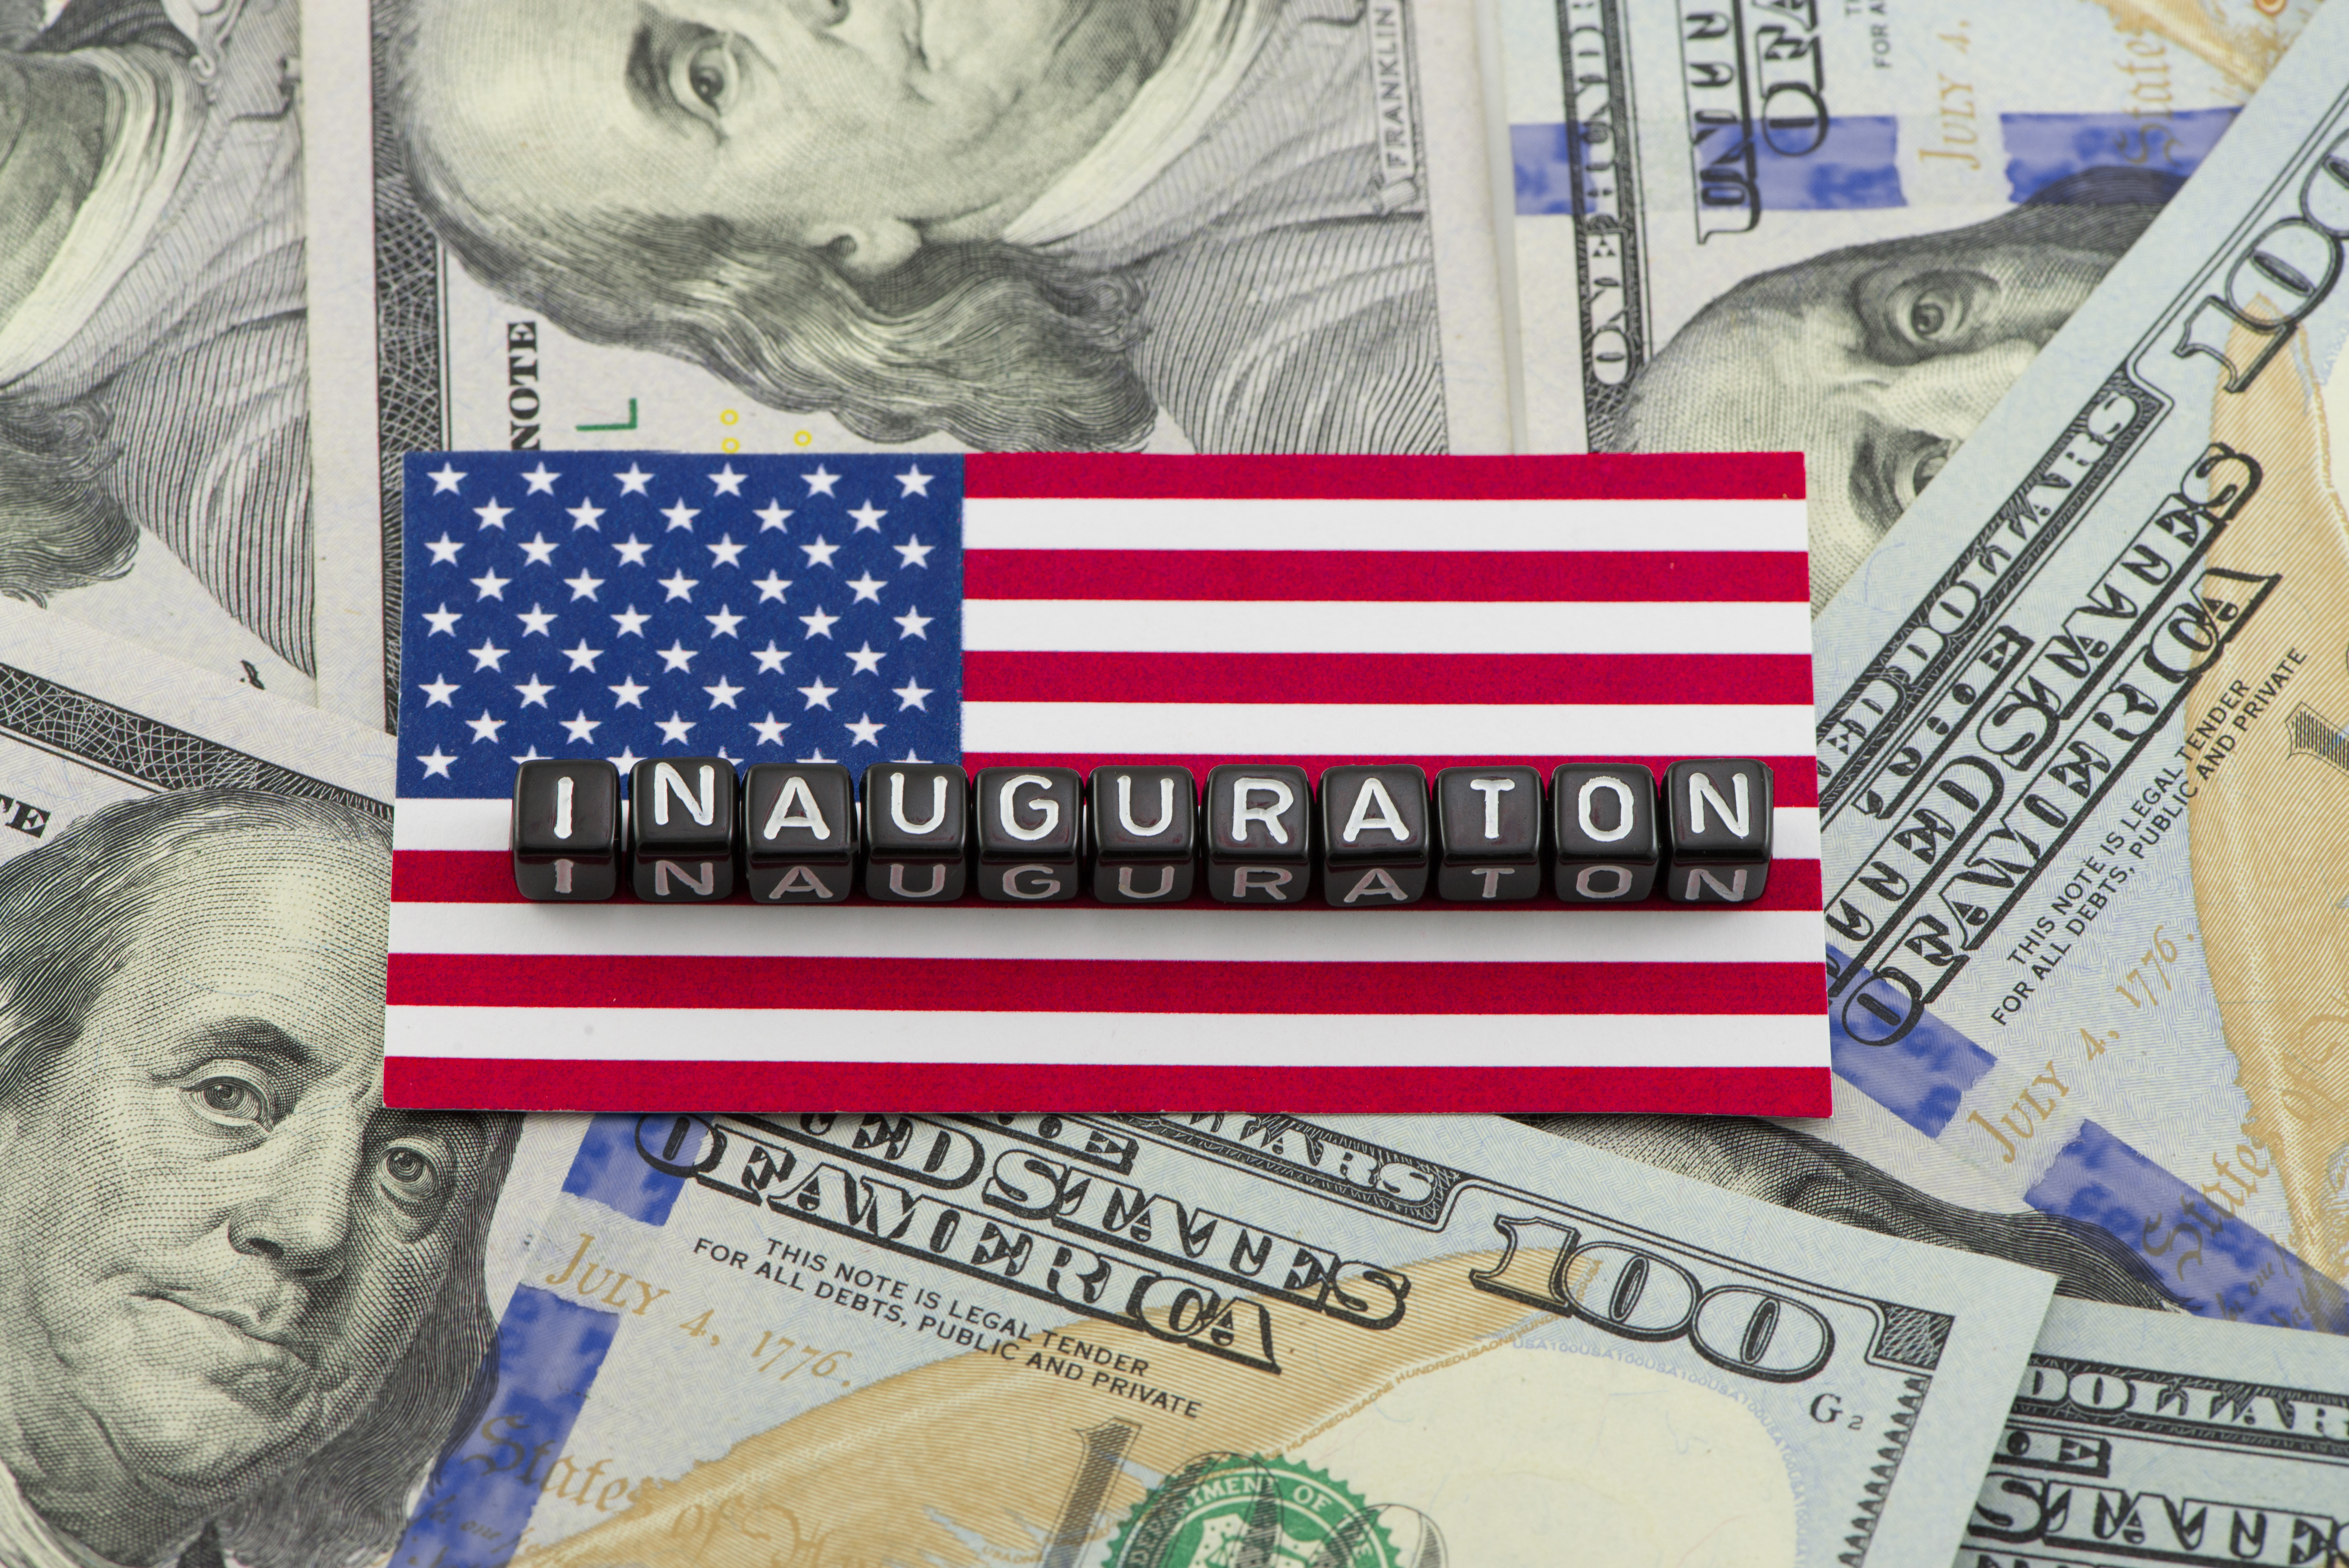 Youtube And Twitter Announces Their Plans For Inauguration Day